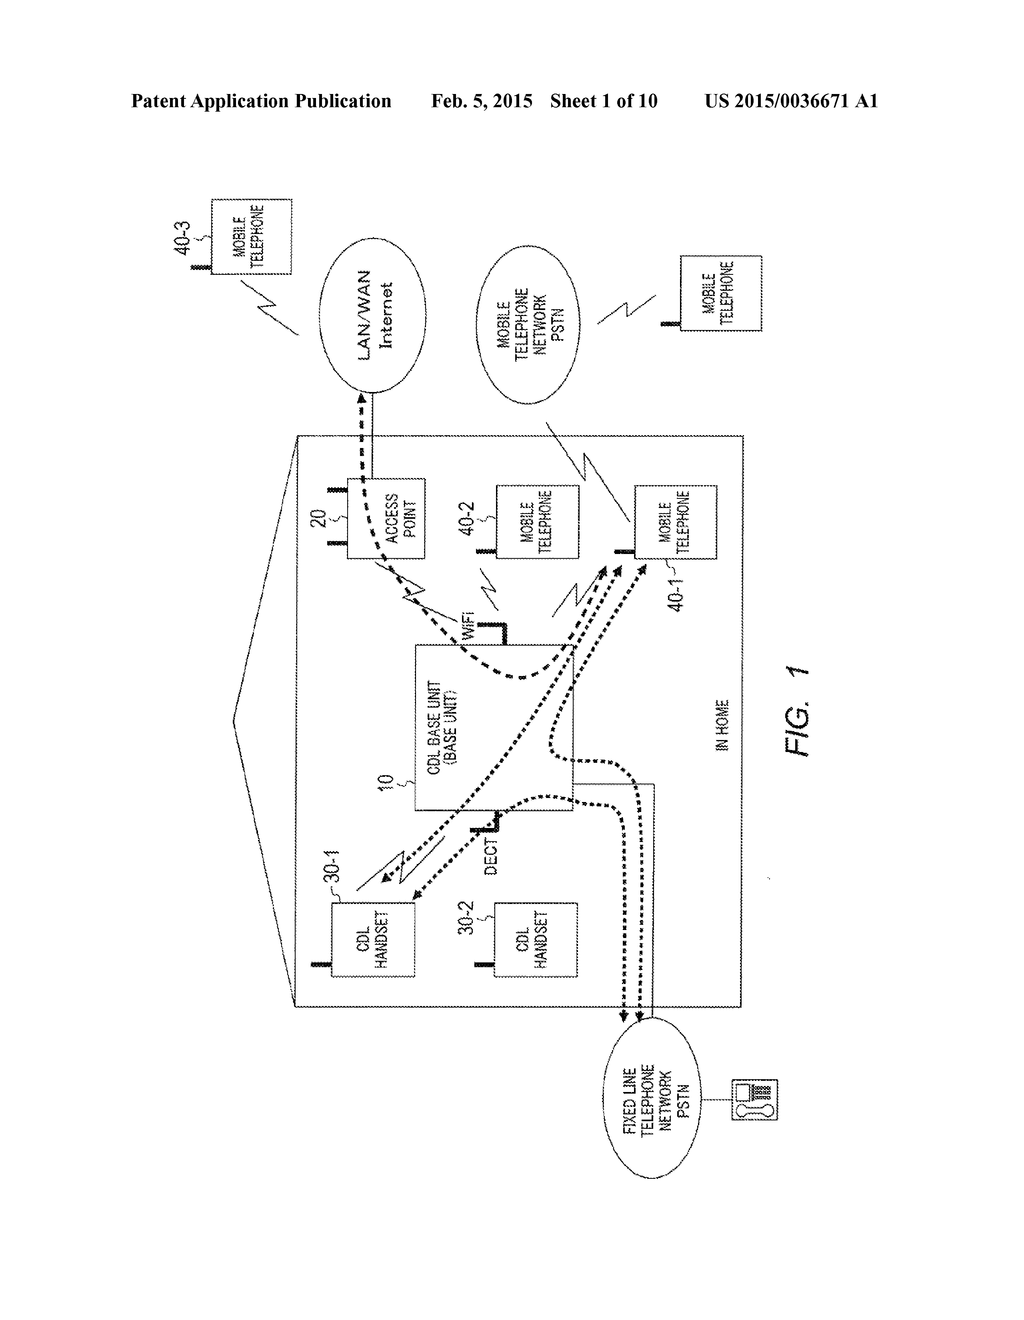 cat 5 wiring diagram racks how to wire a block cat wiring diagram tb 2006 Audi Wiring Diagram cat ethernet cable wiring diagram cat discover your wiring cat 5 wiring diagram to fax